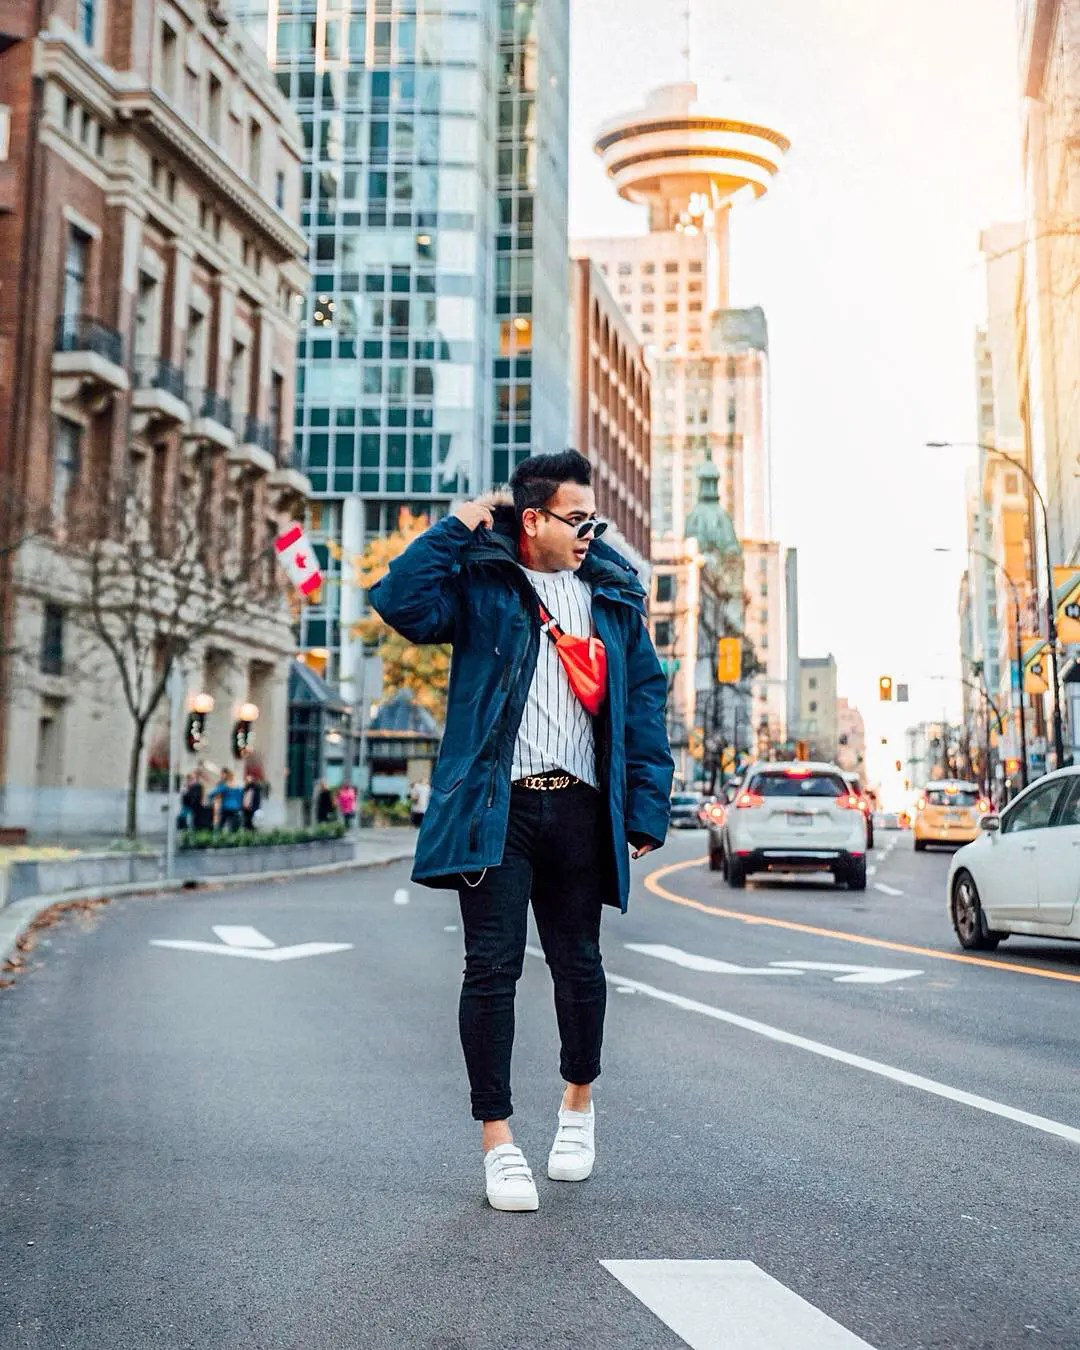 Jonathan Waiching Ho_Social Media Influencer Travel Fashion Vancouver Toronto Montreal Canada_Top Influencers Canada-9